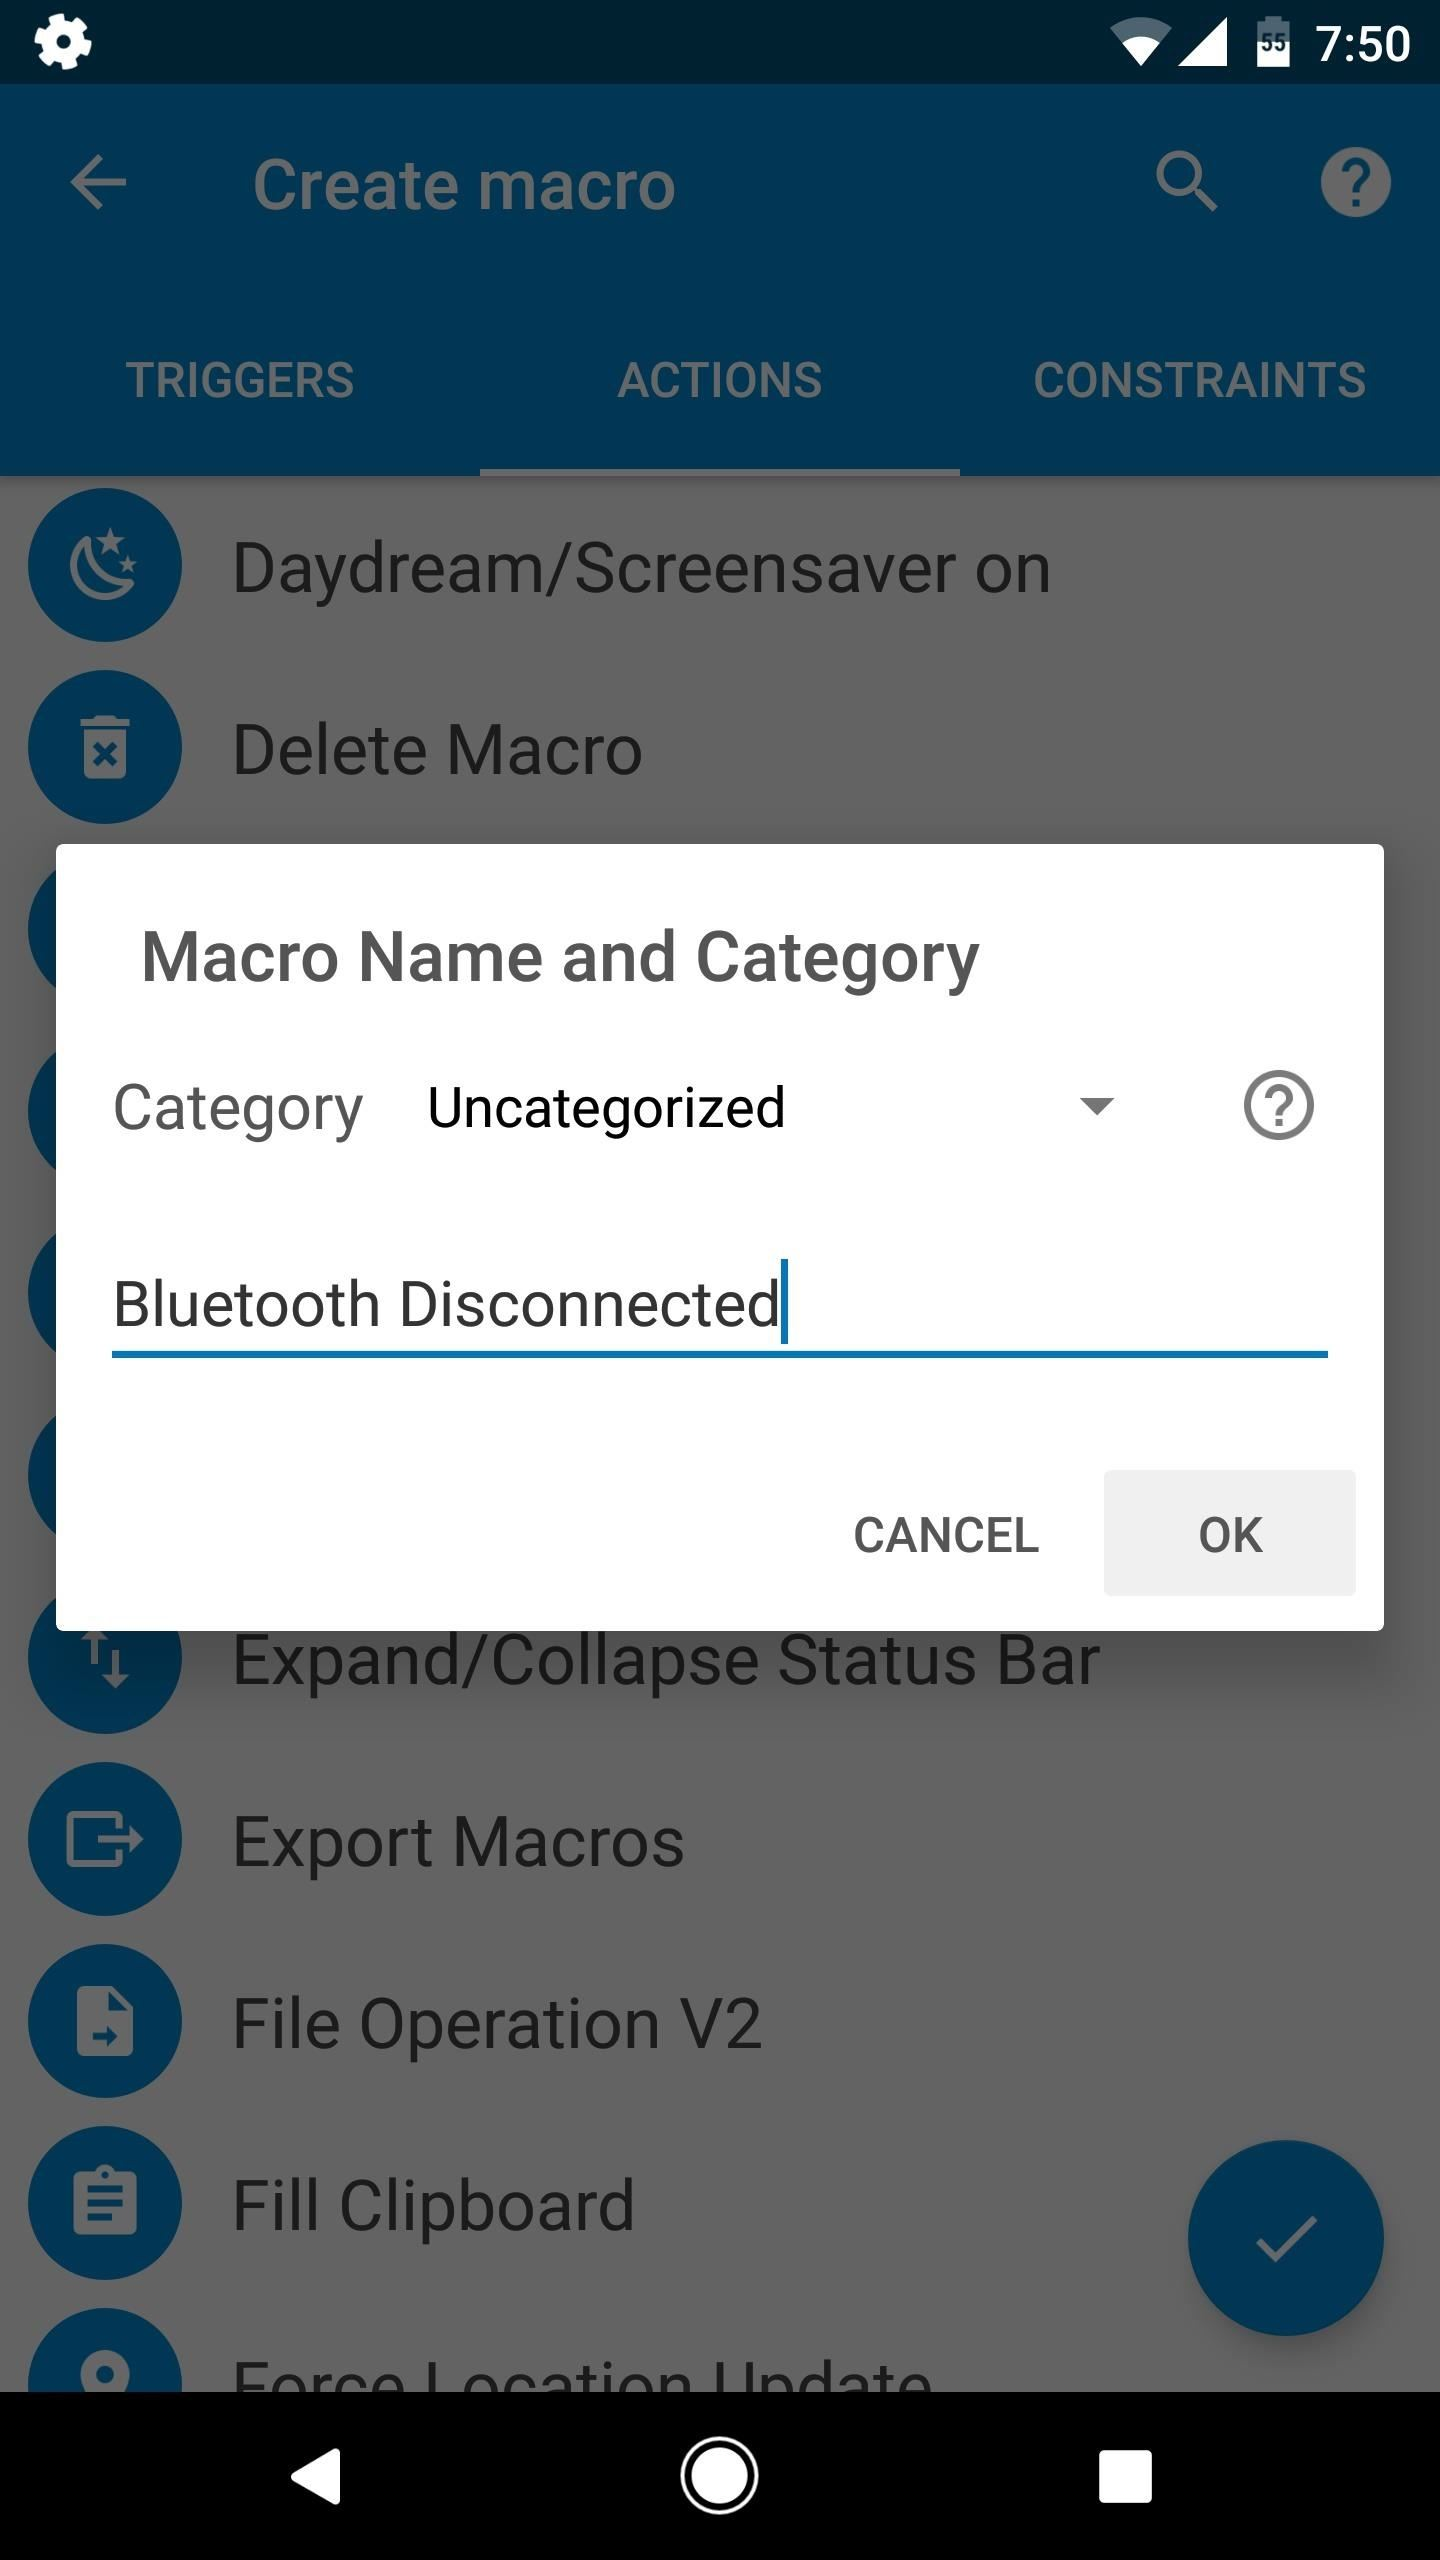 Set Up a Distress Signal on Android for Your Bluetooth Headphones